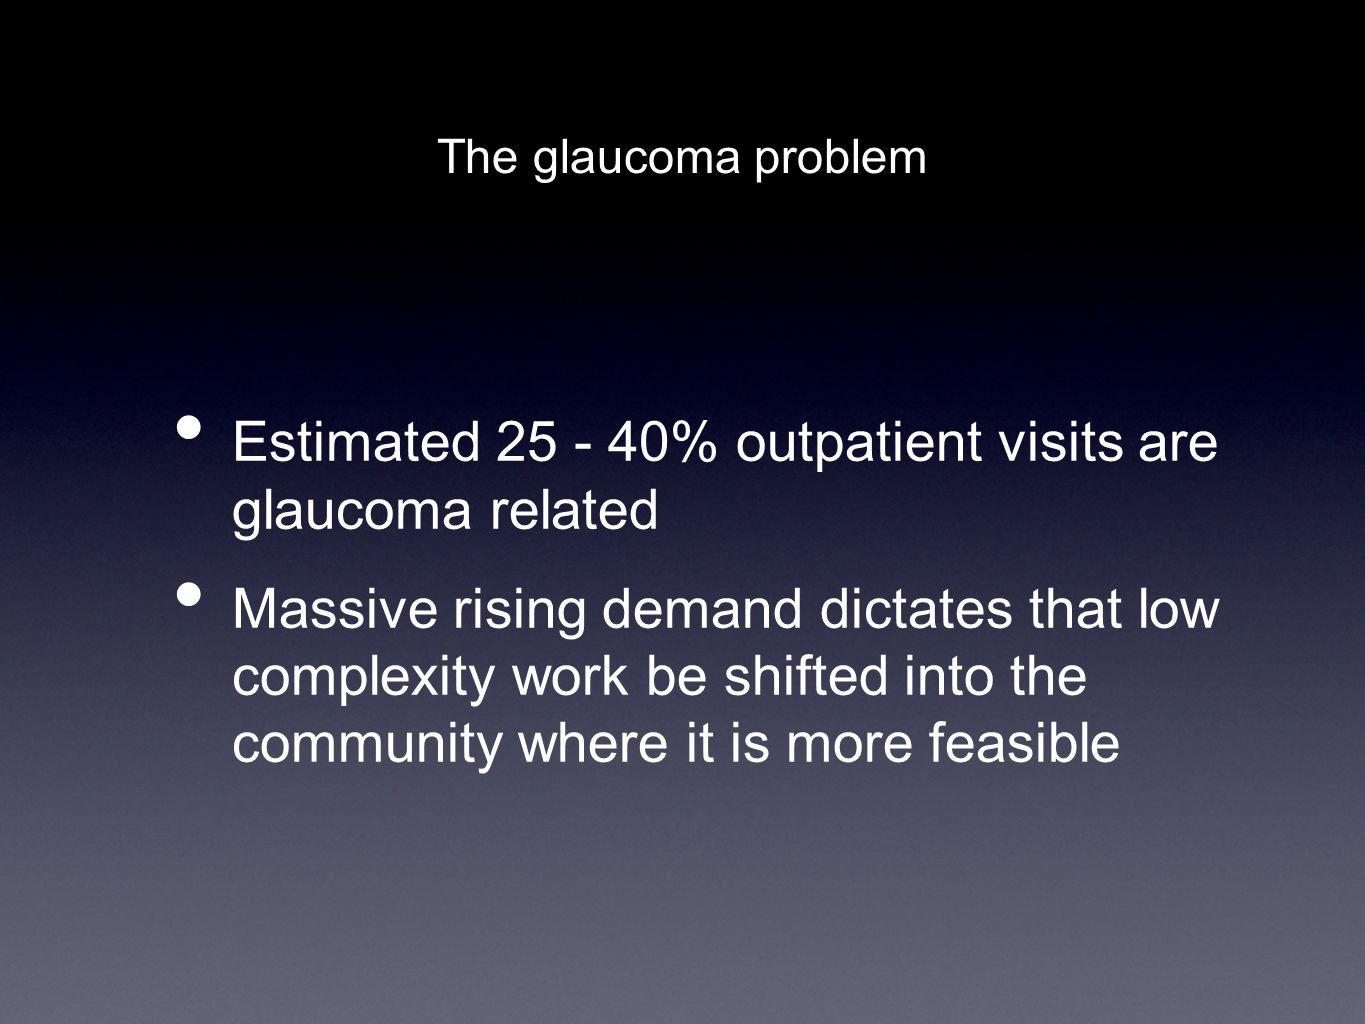 The glaucoma problem Estimated 25 - 40% outpatient visits are glaucoma related Massive rising demand dictates that low complexity work be shifted into